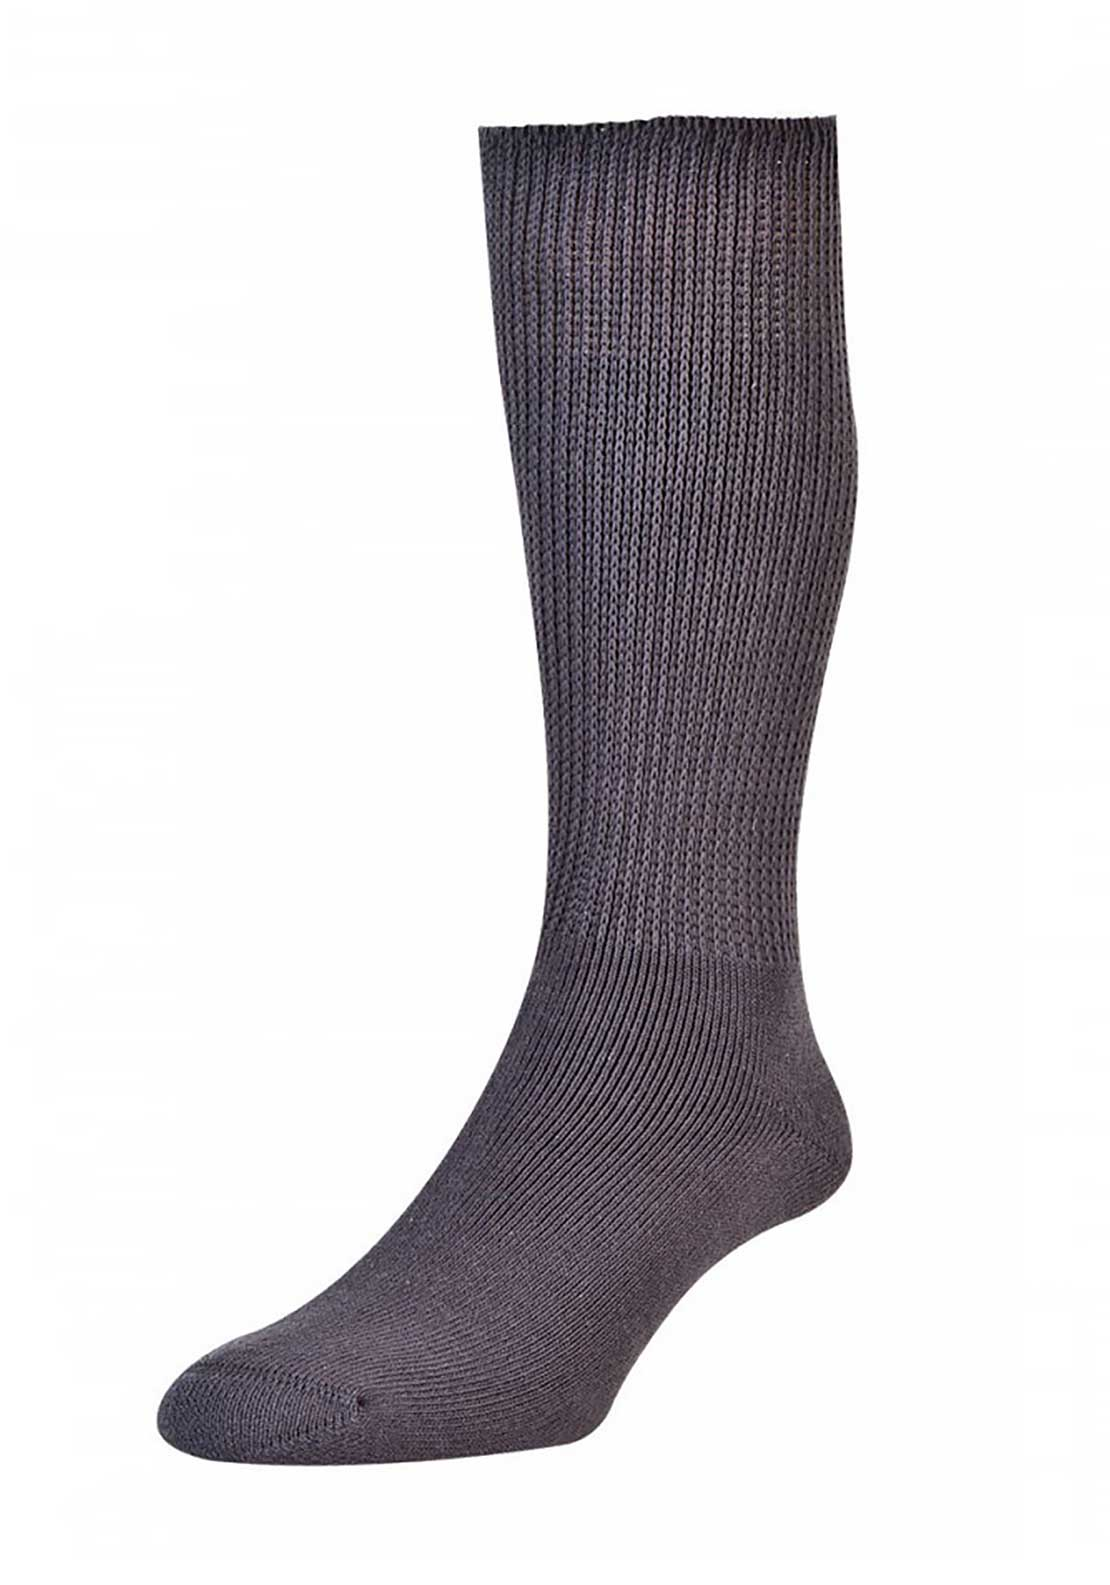 HJ Hall Unisex Cotton Diabetic Socks 6-11, Grey